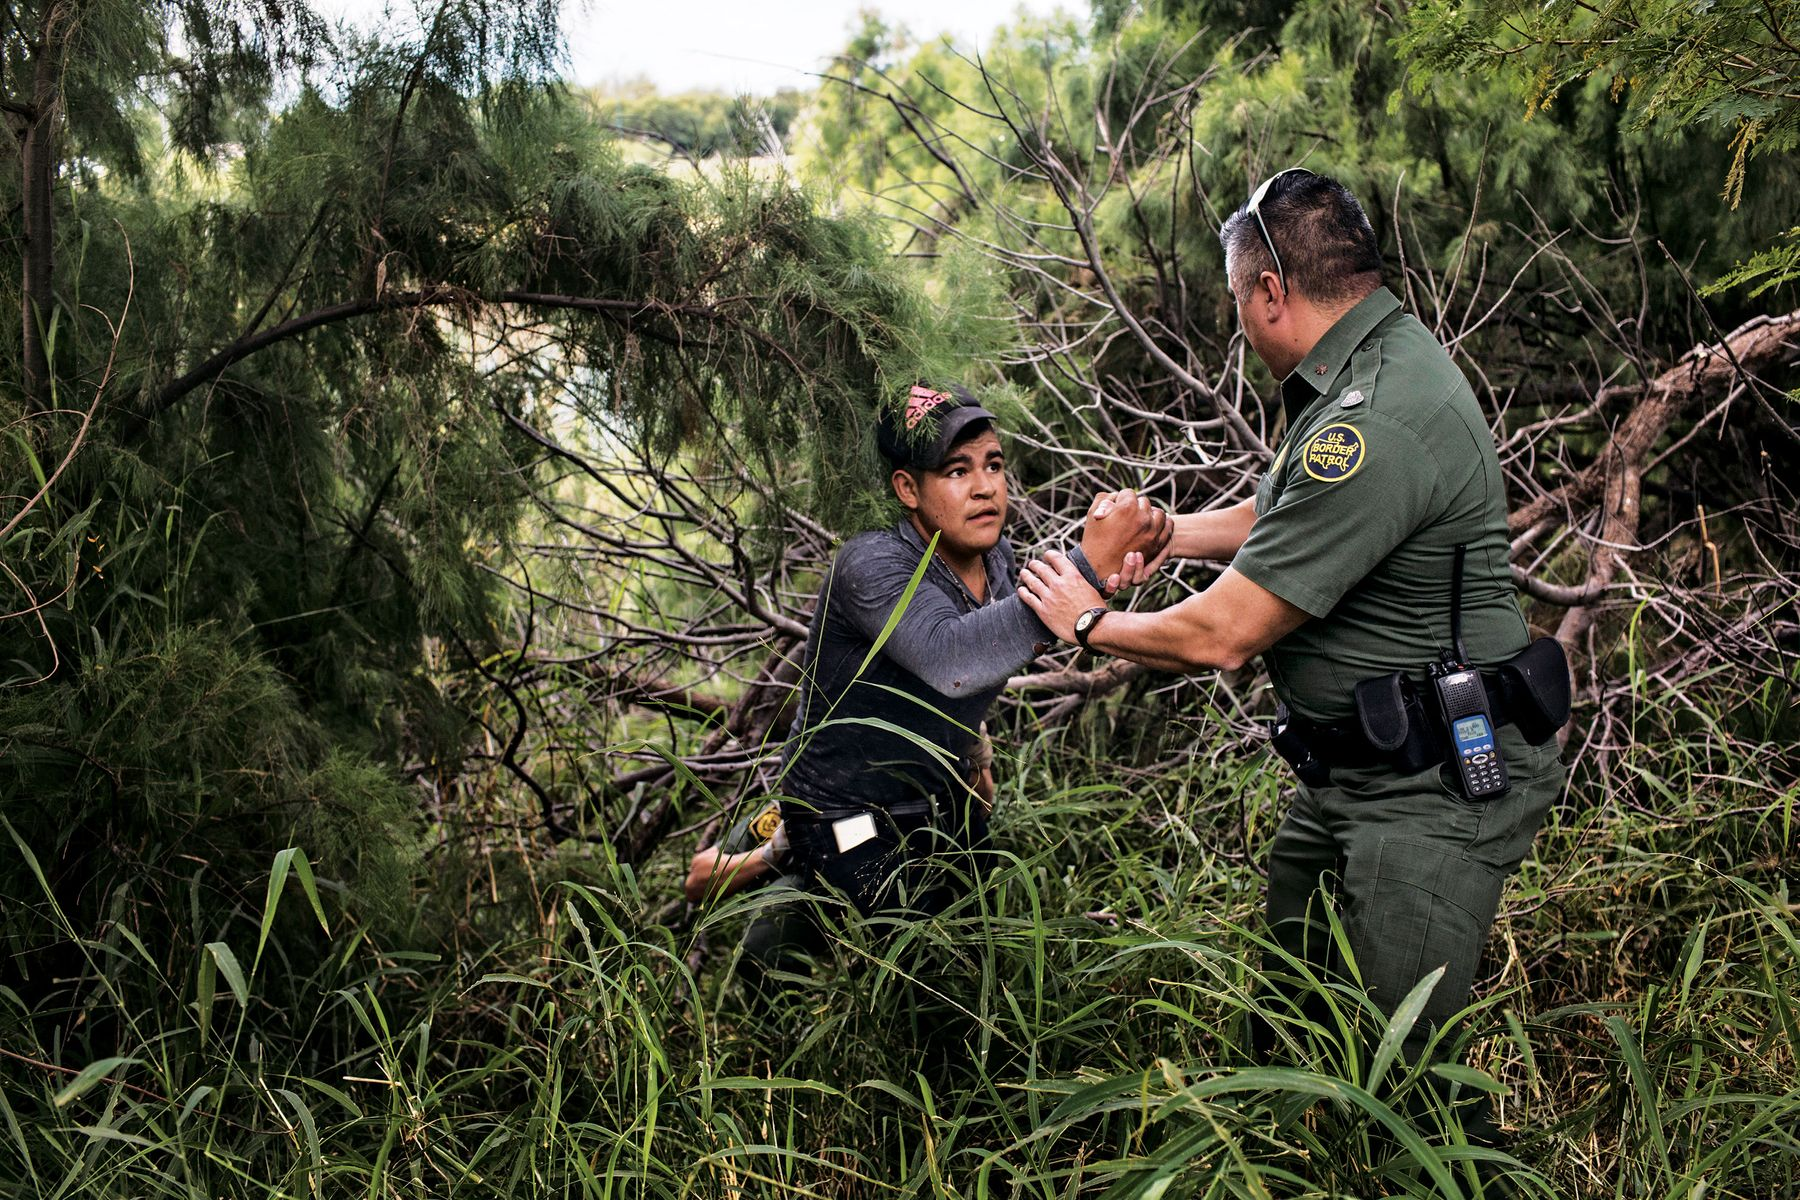 Would Patrolling With the Border Patrol Change Your Mind?